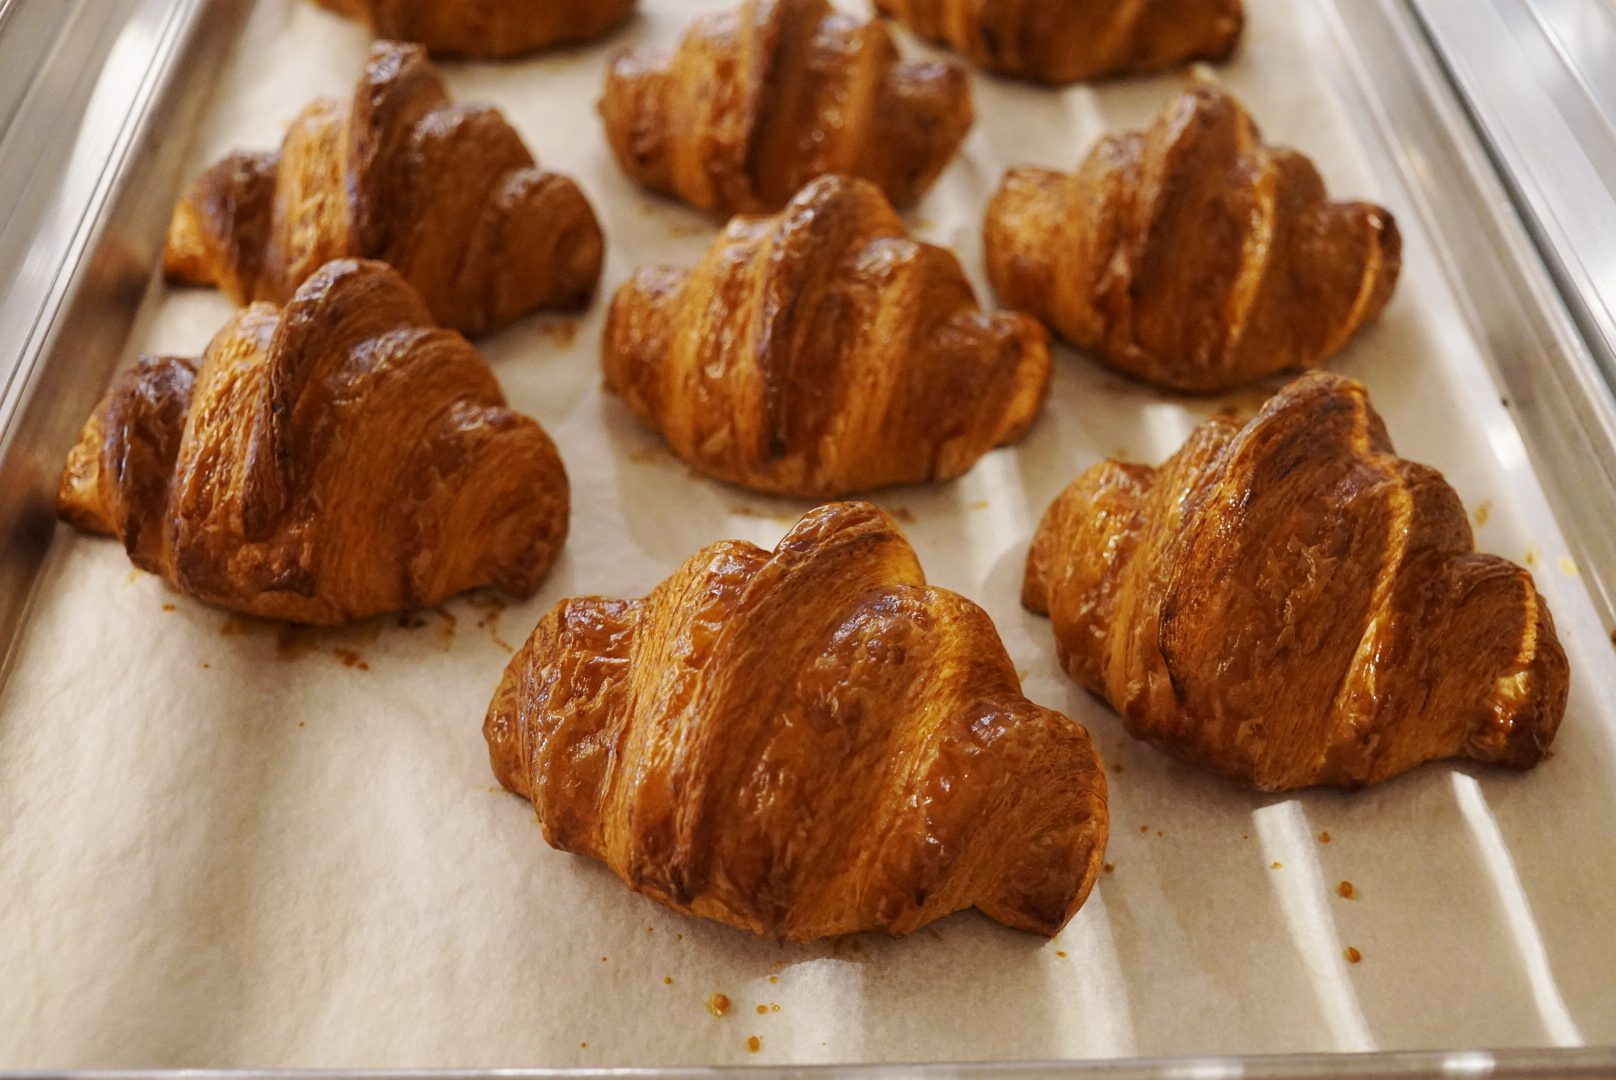 A Glorious Golden Brown Croissant Comes to Life in Downtown LA's Bon Temps